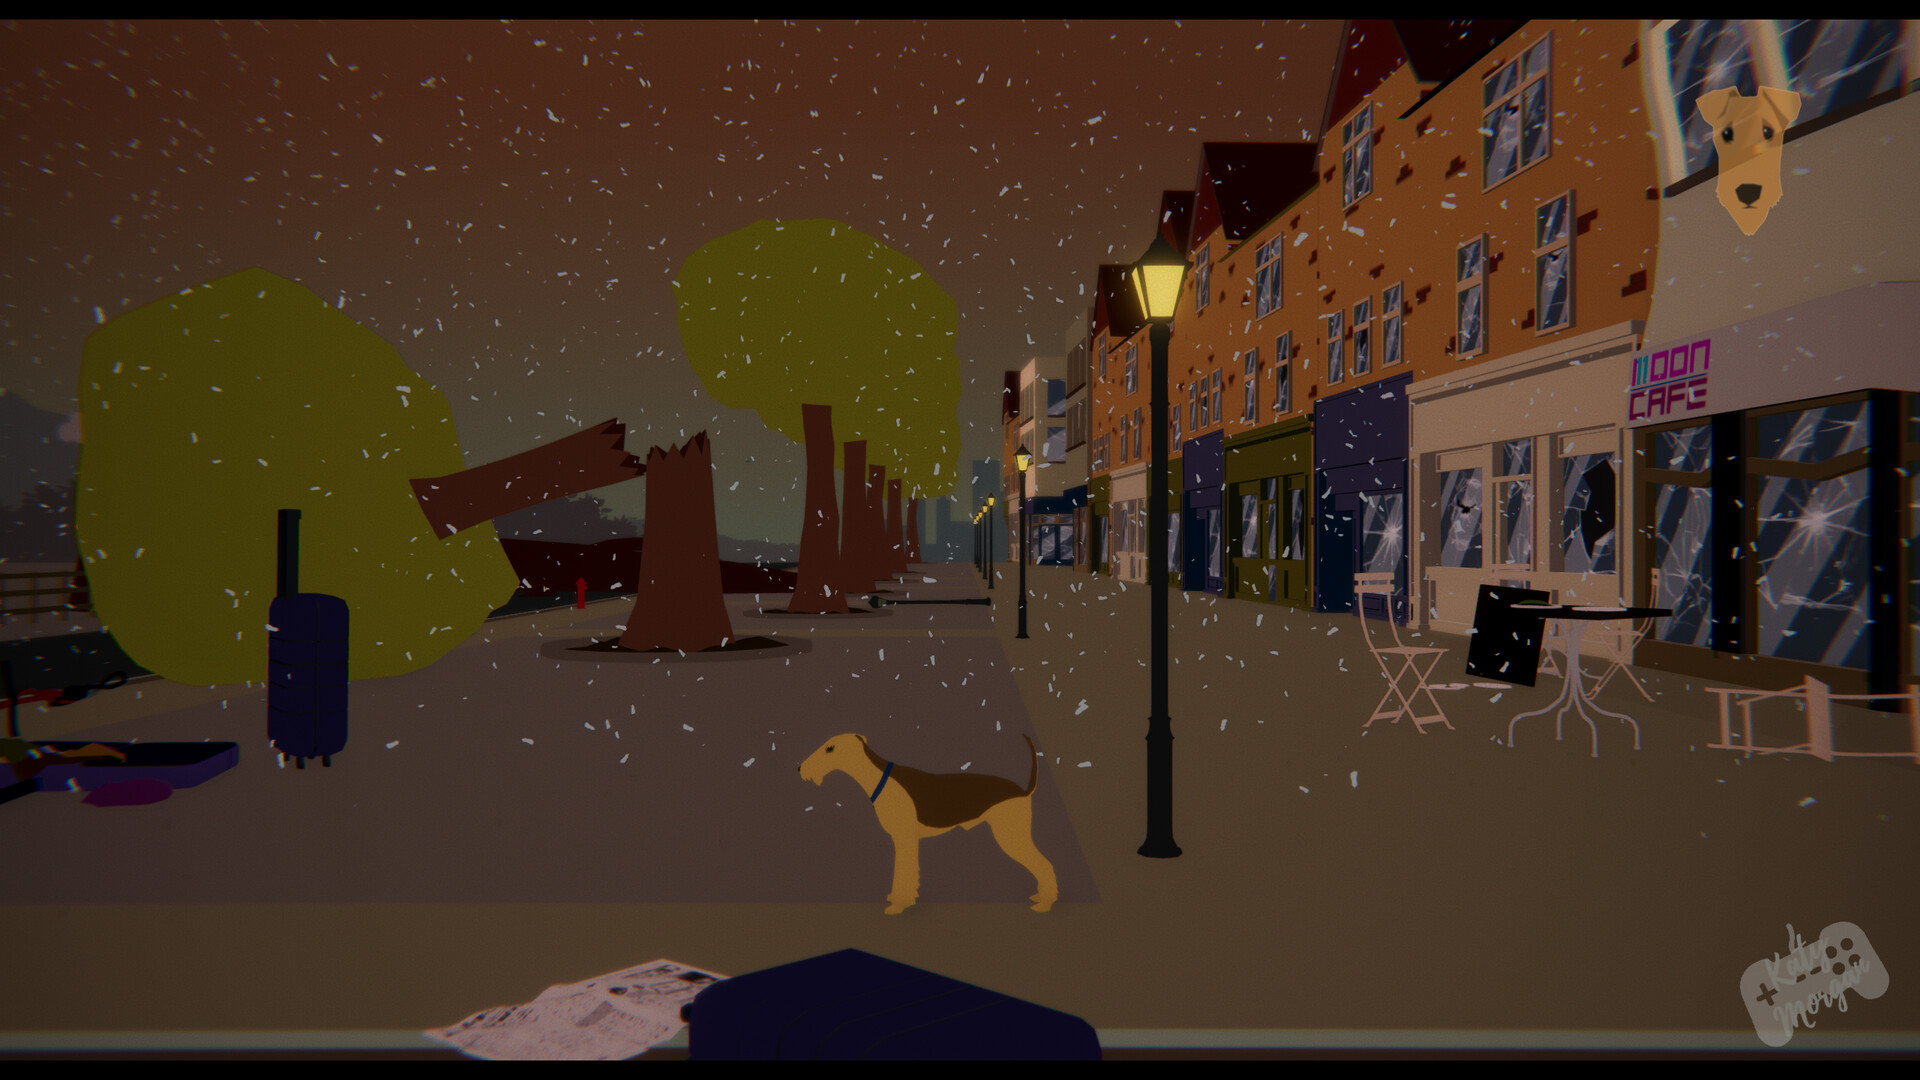 ..the dog also realises that the town has been mostly abandoned. All assets here are 3D made by myself in Maya.